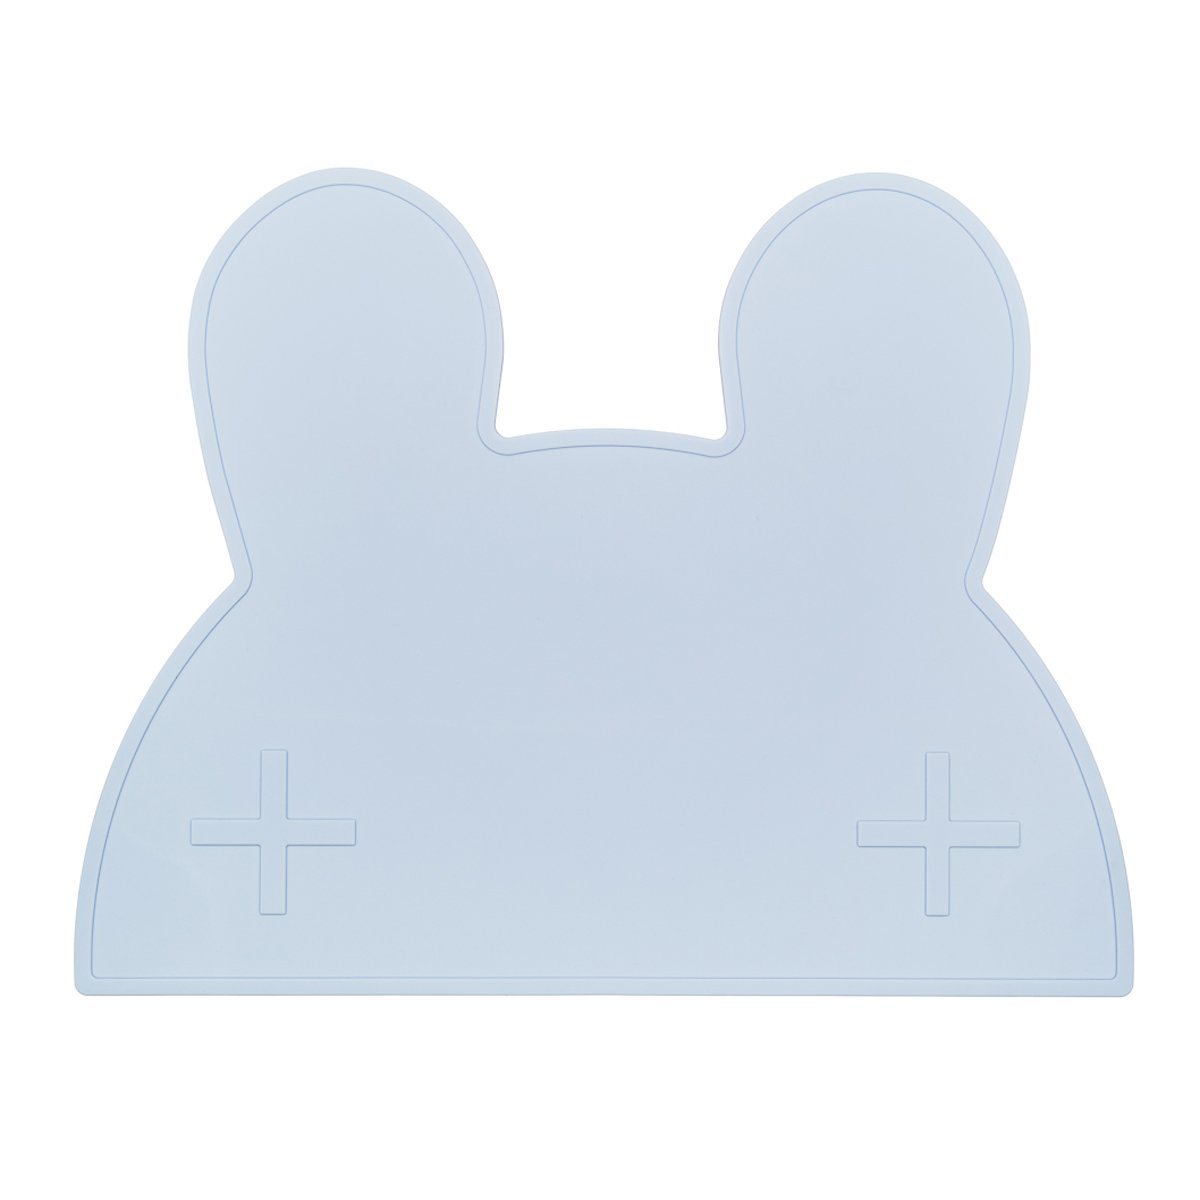 Bunny Placemat (Powder Blue)